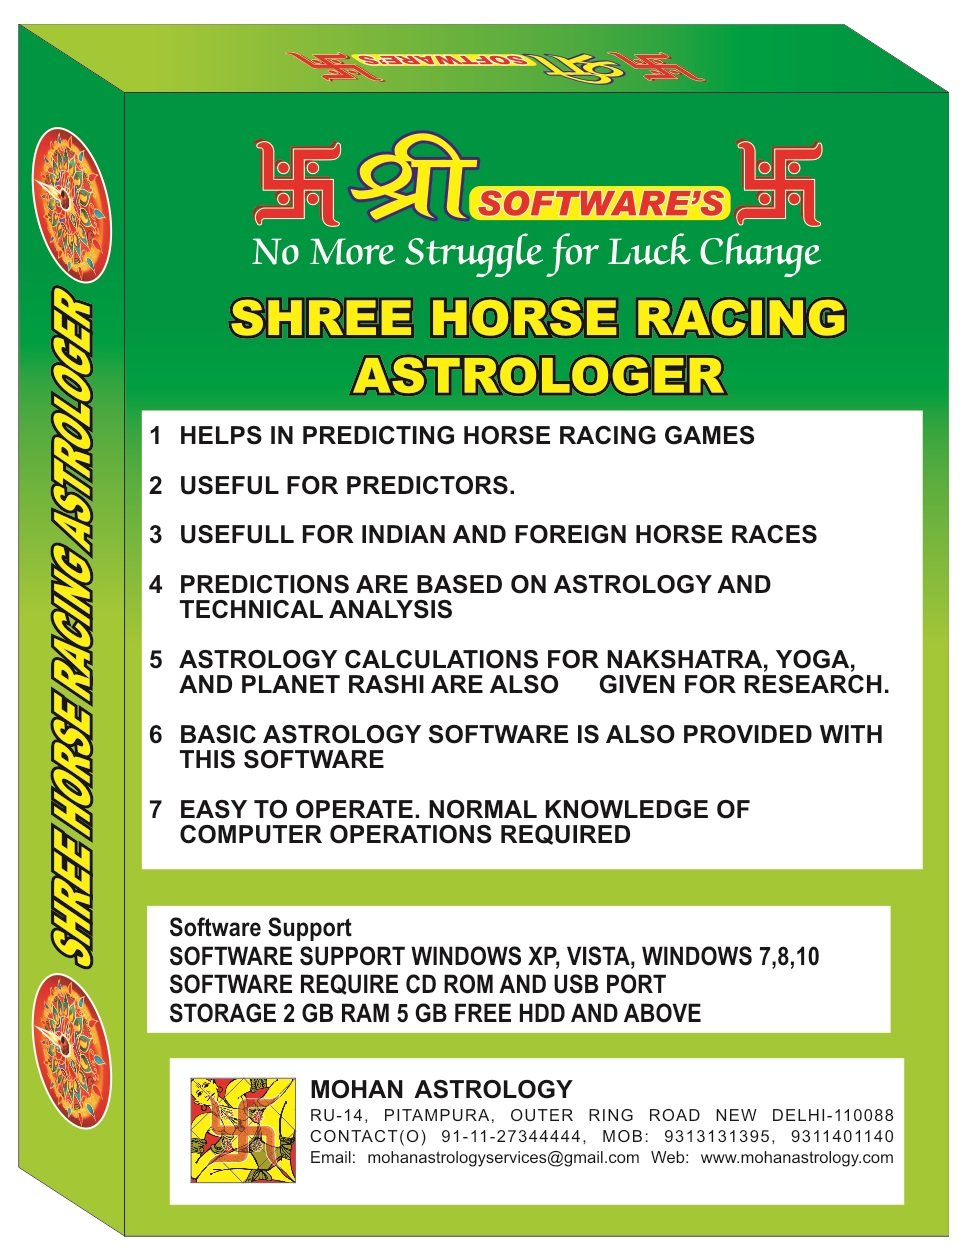 Shree Horse Racing Astrologer  Predict Horse Winning for Indian and